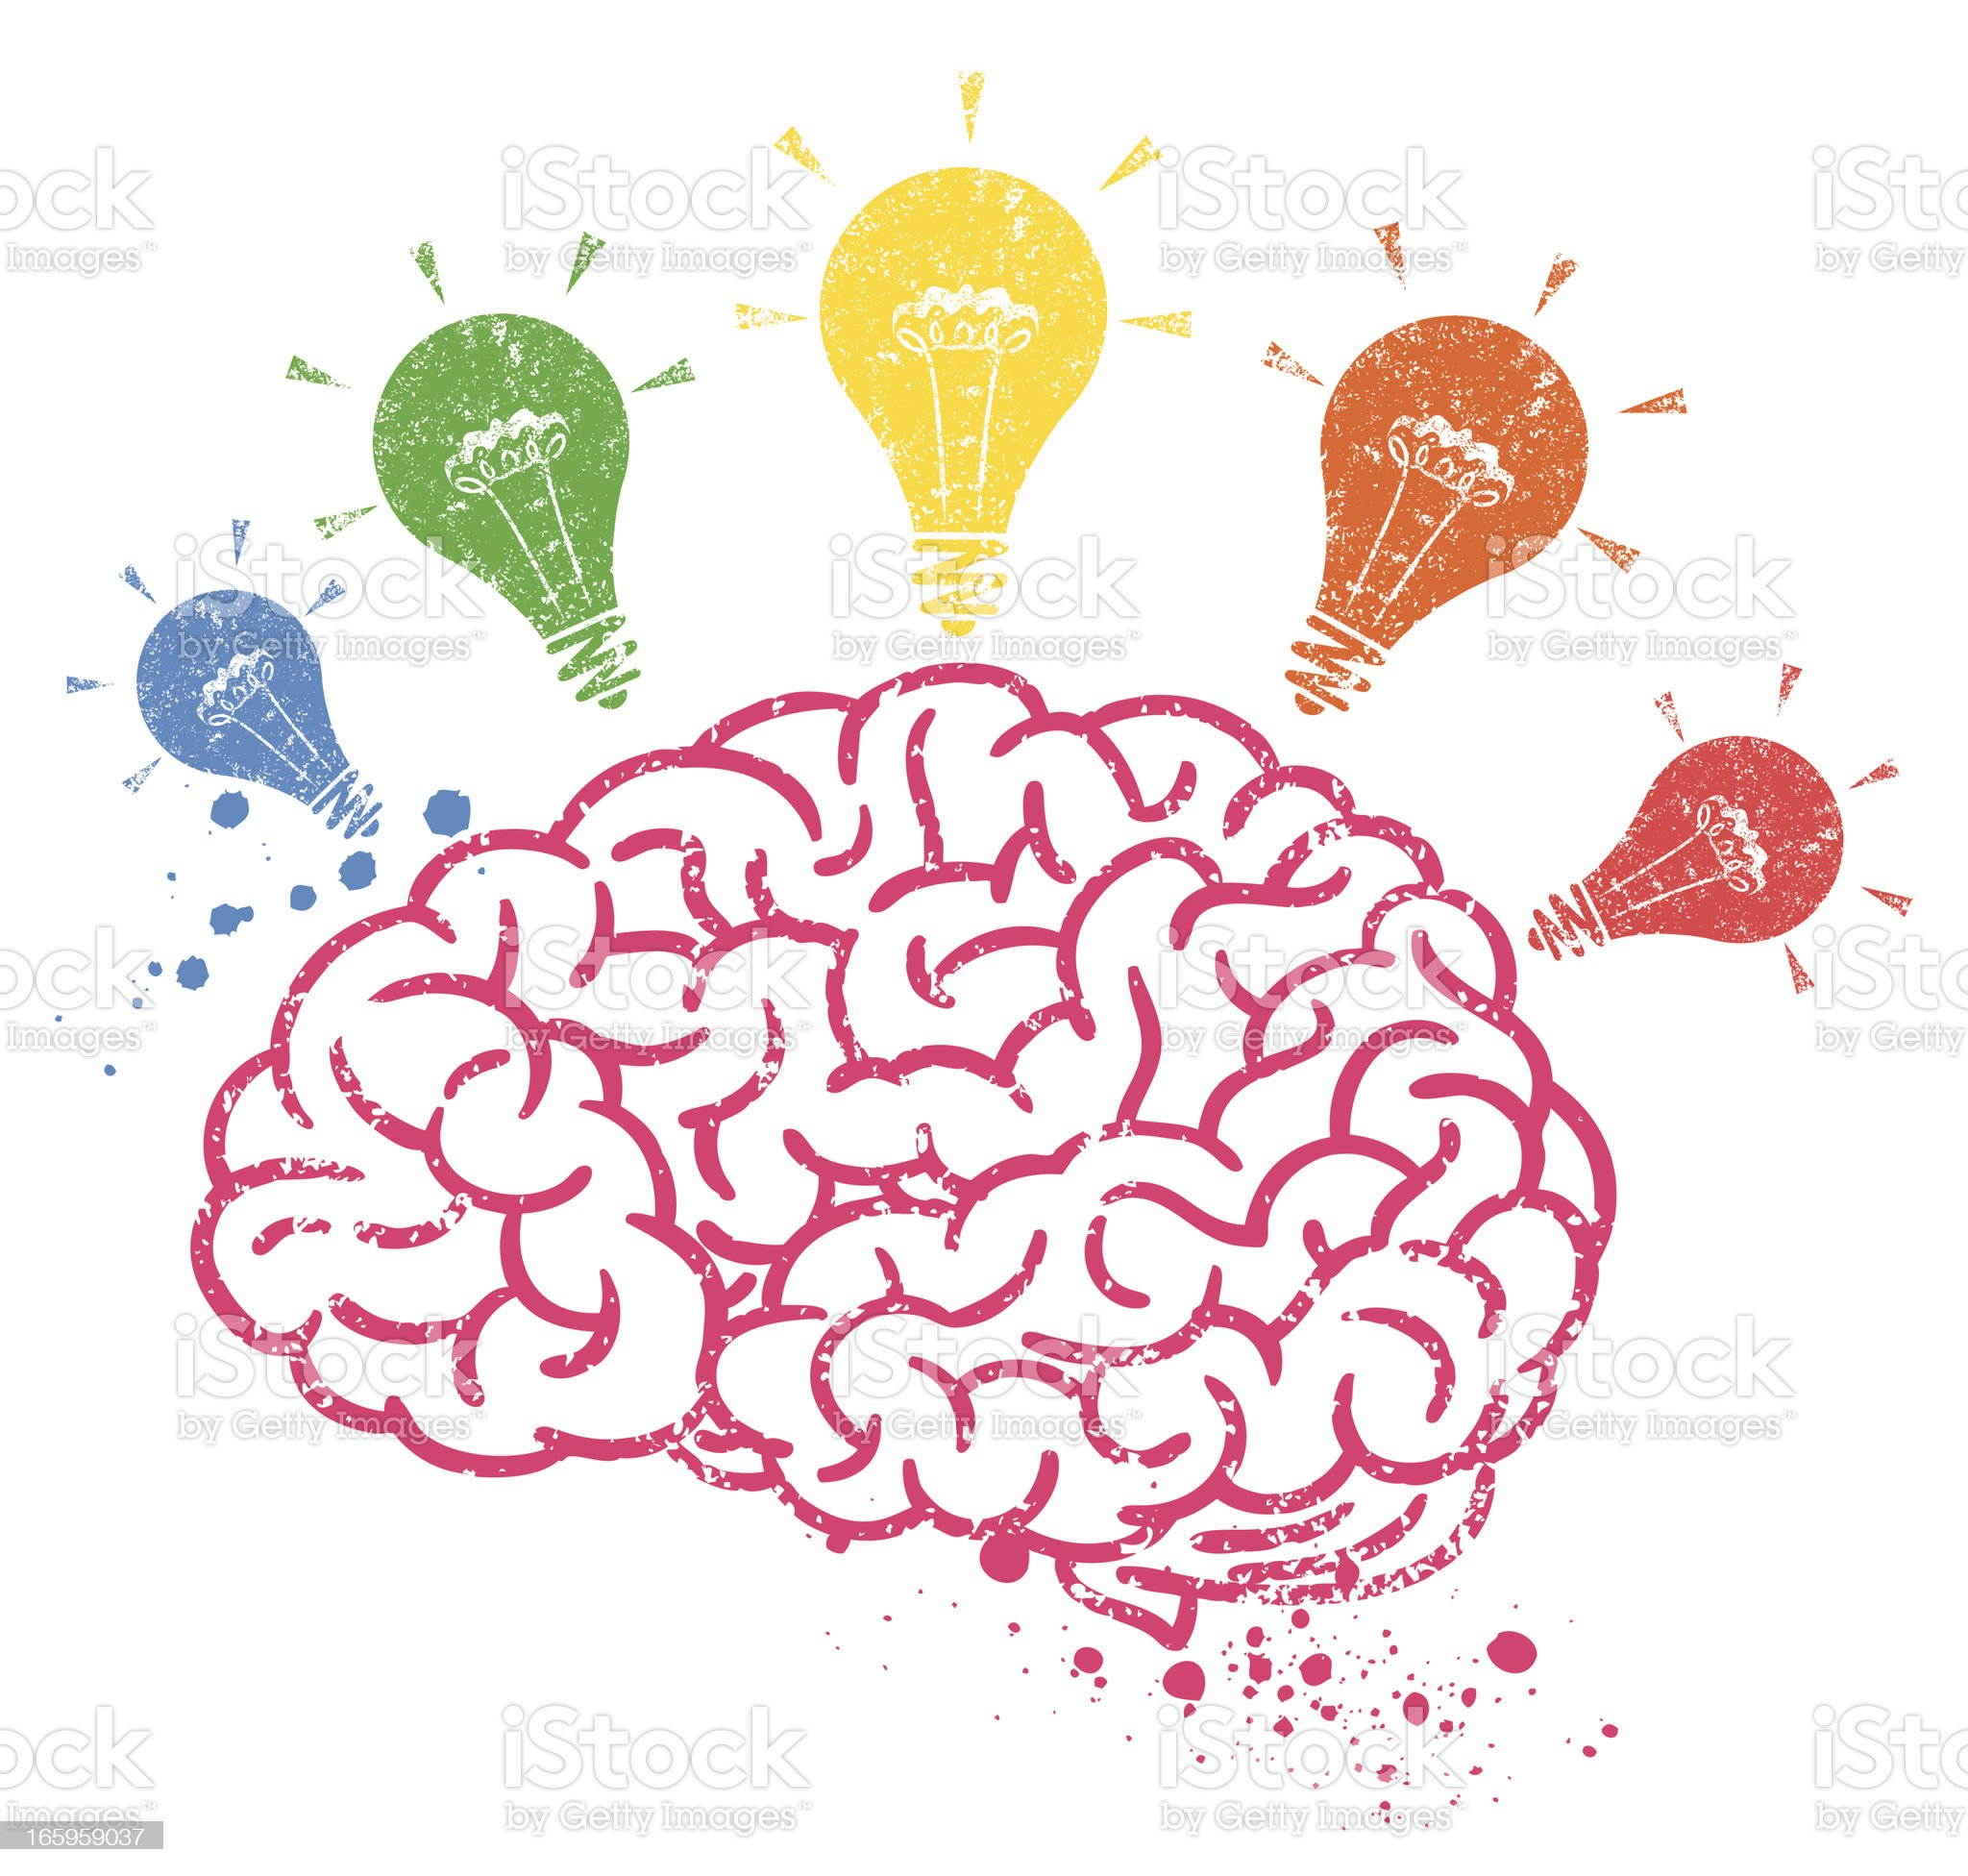 Creative Brain royalty-free creative brain stock illustration - download image now